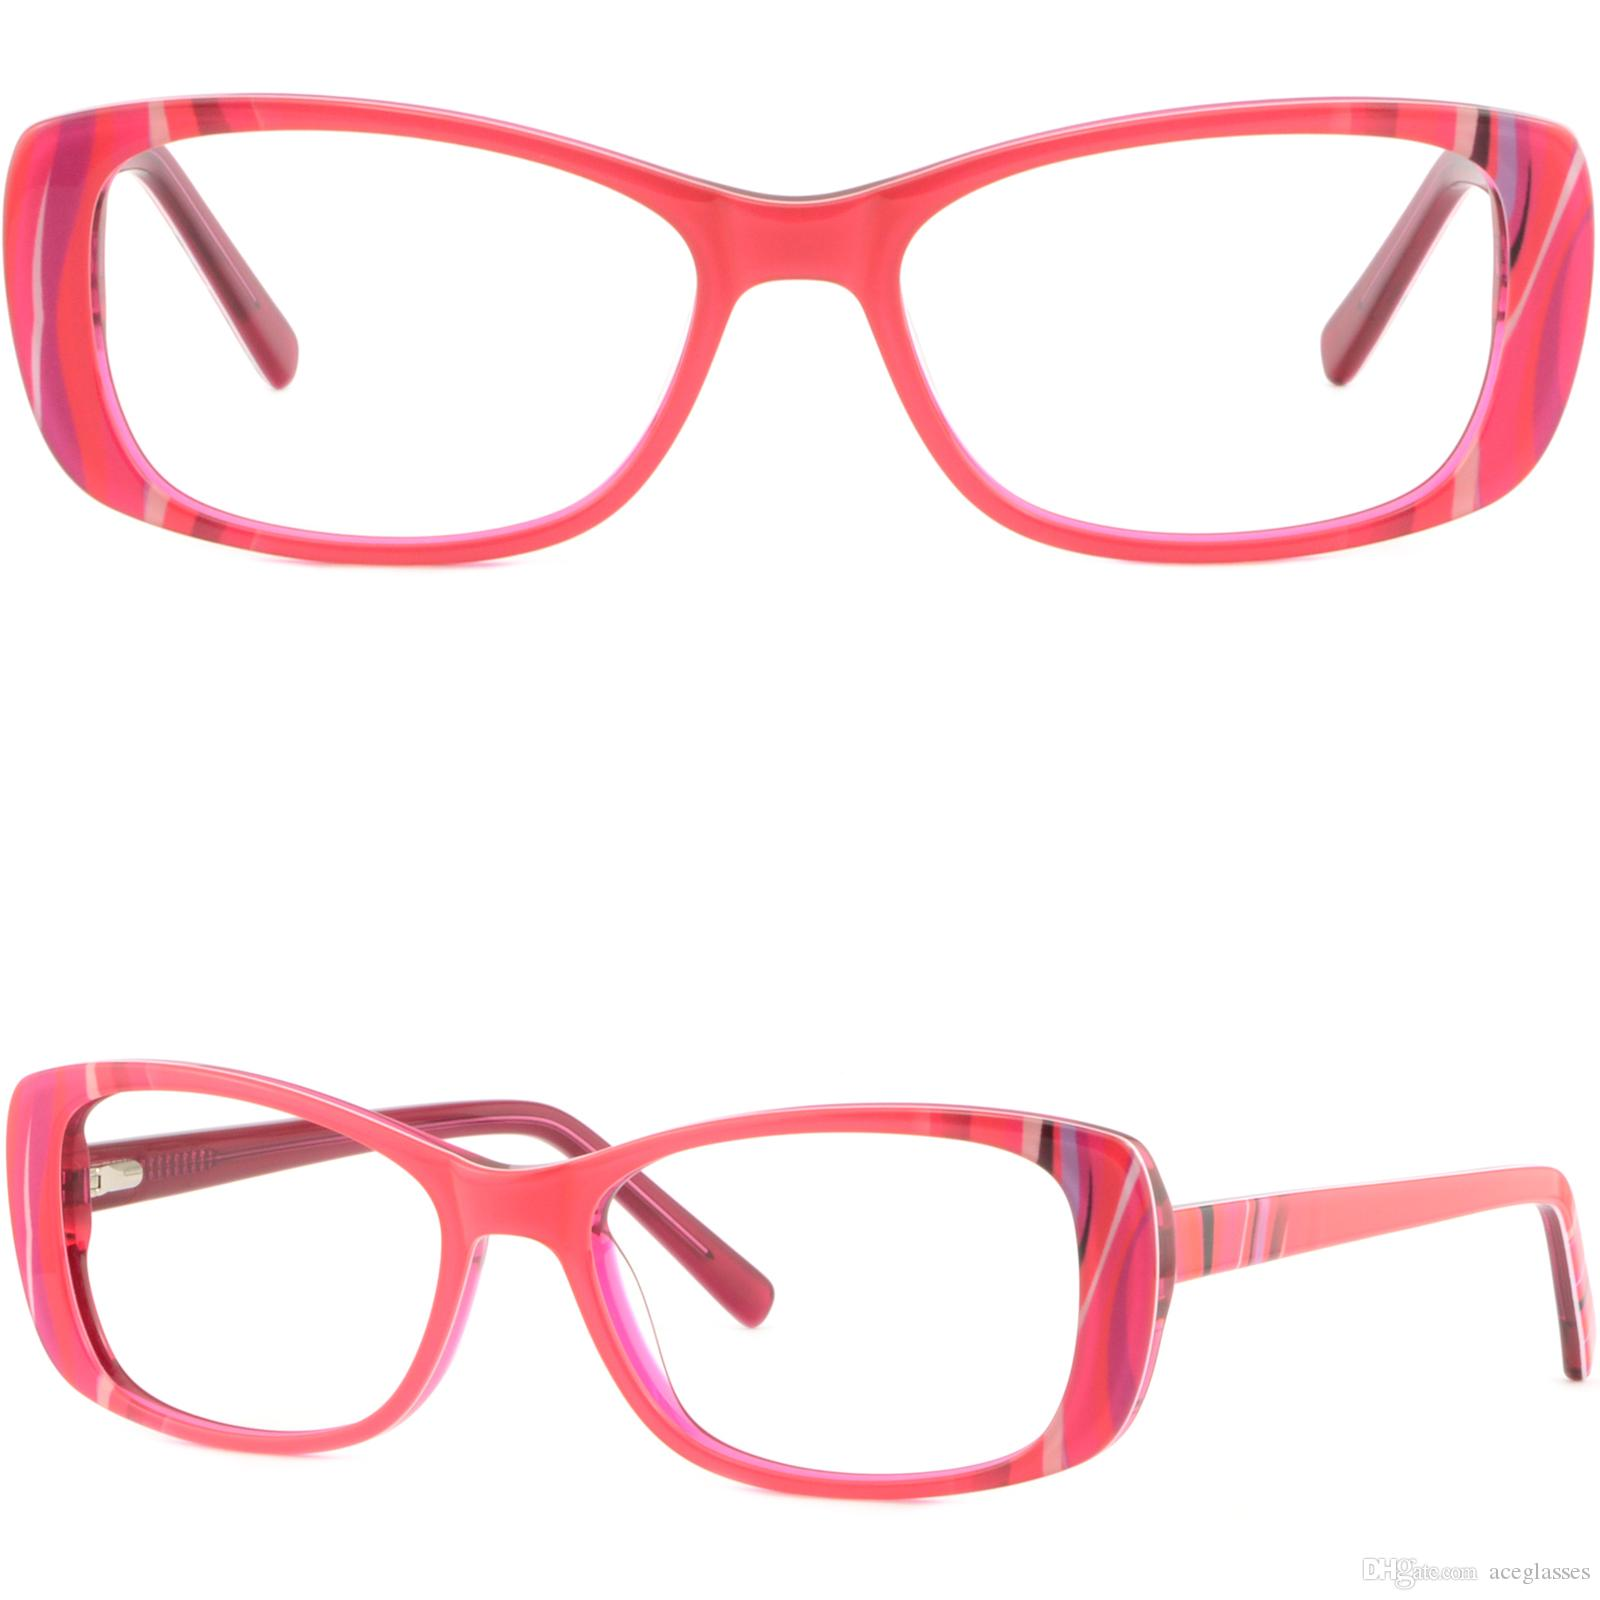 8be28b0aa41 Red Rectangle Womens Frame Plastic Prescription Glasses Sunglasses Spring  Hinges Glasses Frame Online with  35.87 Piece on Aceglasses s Store